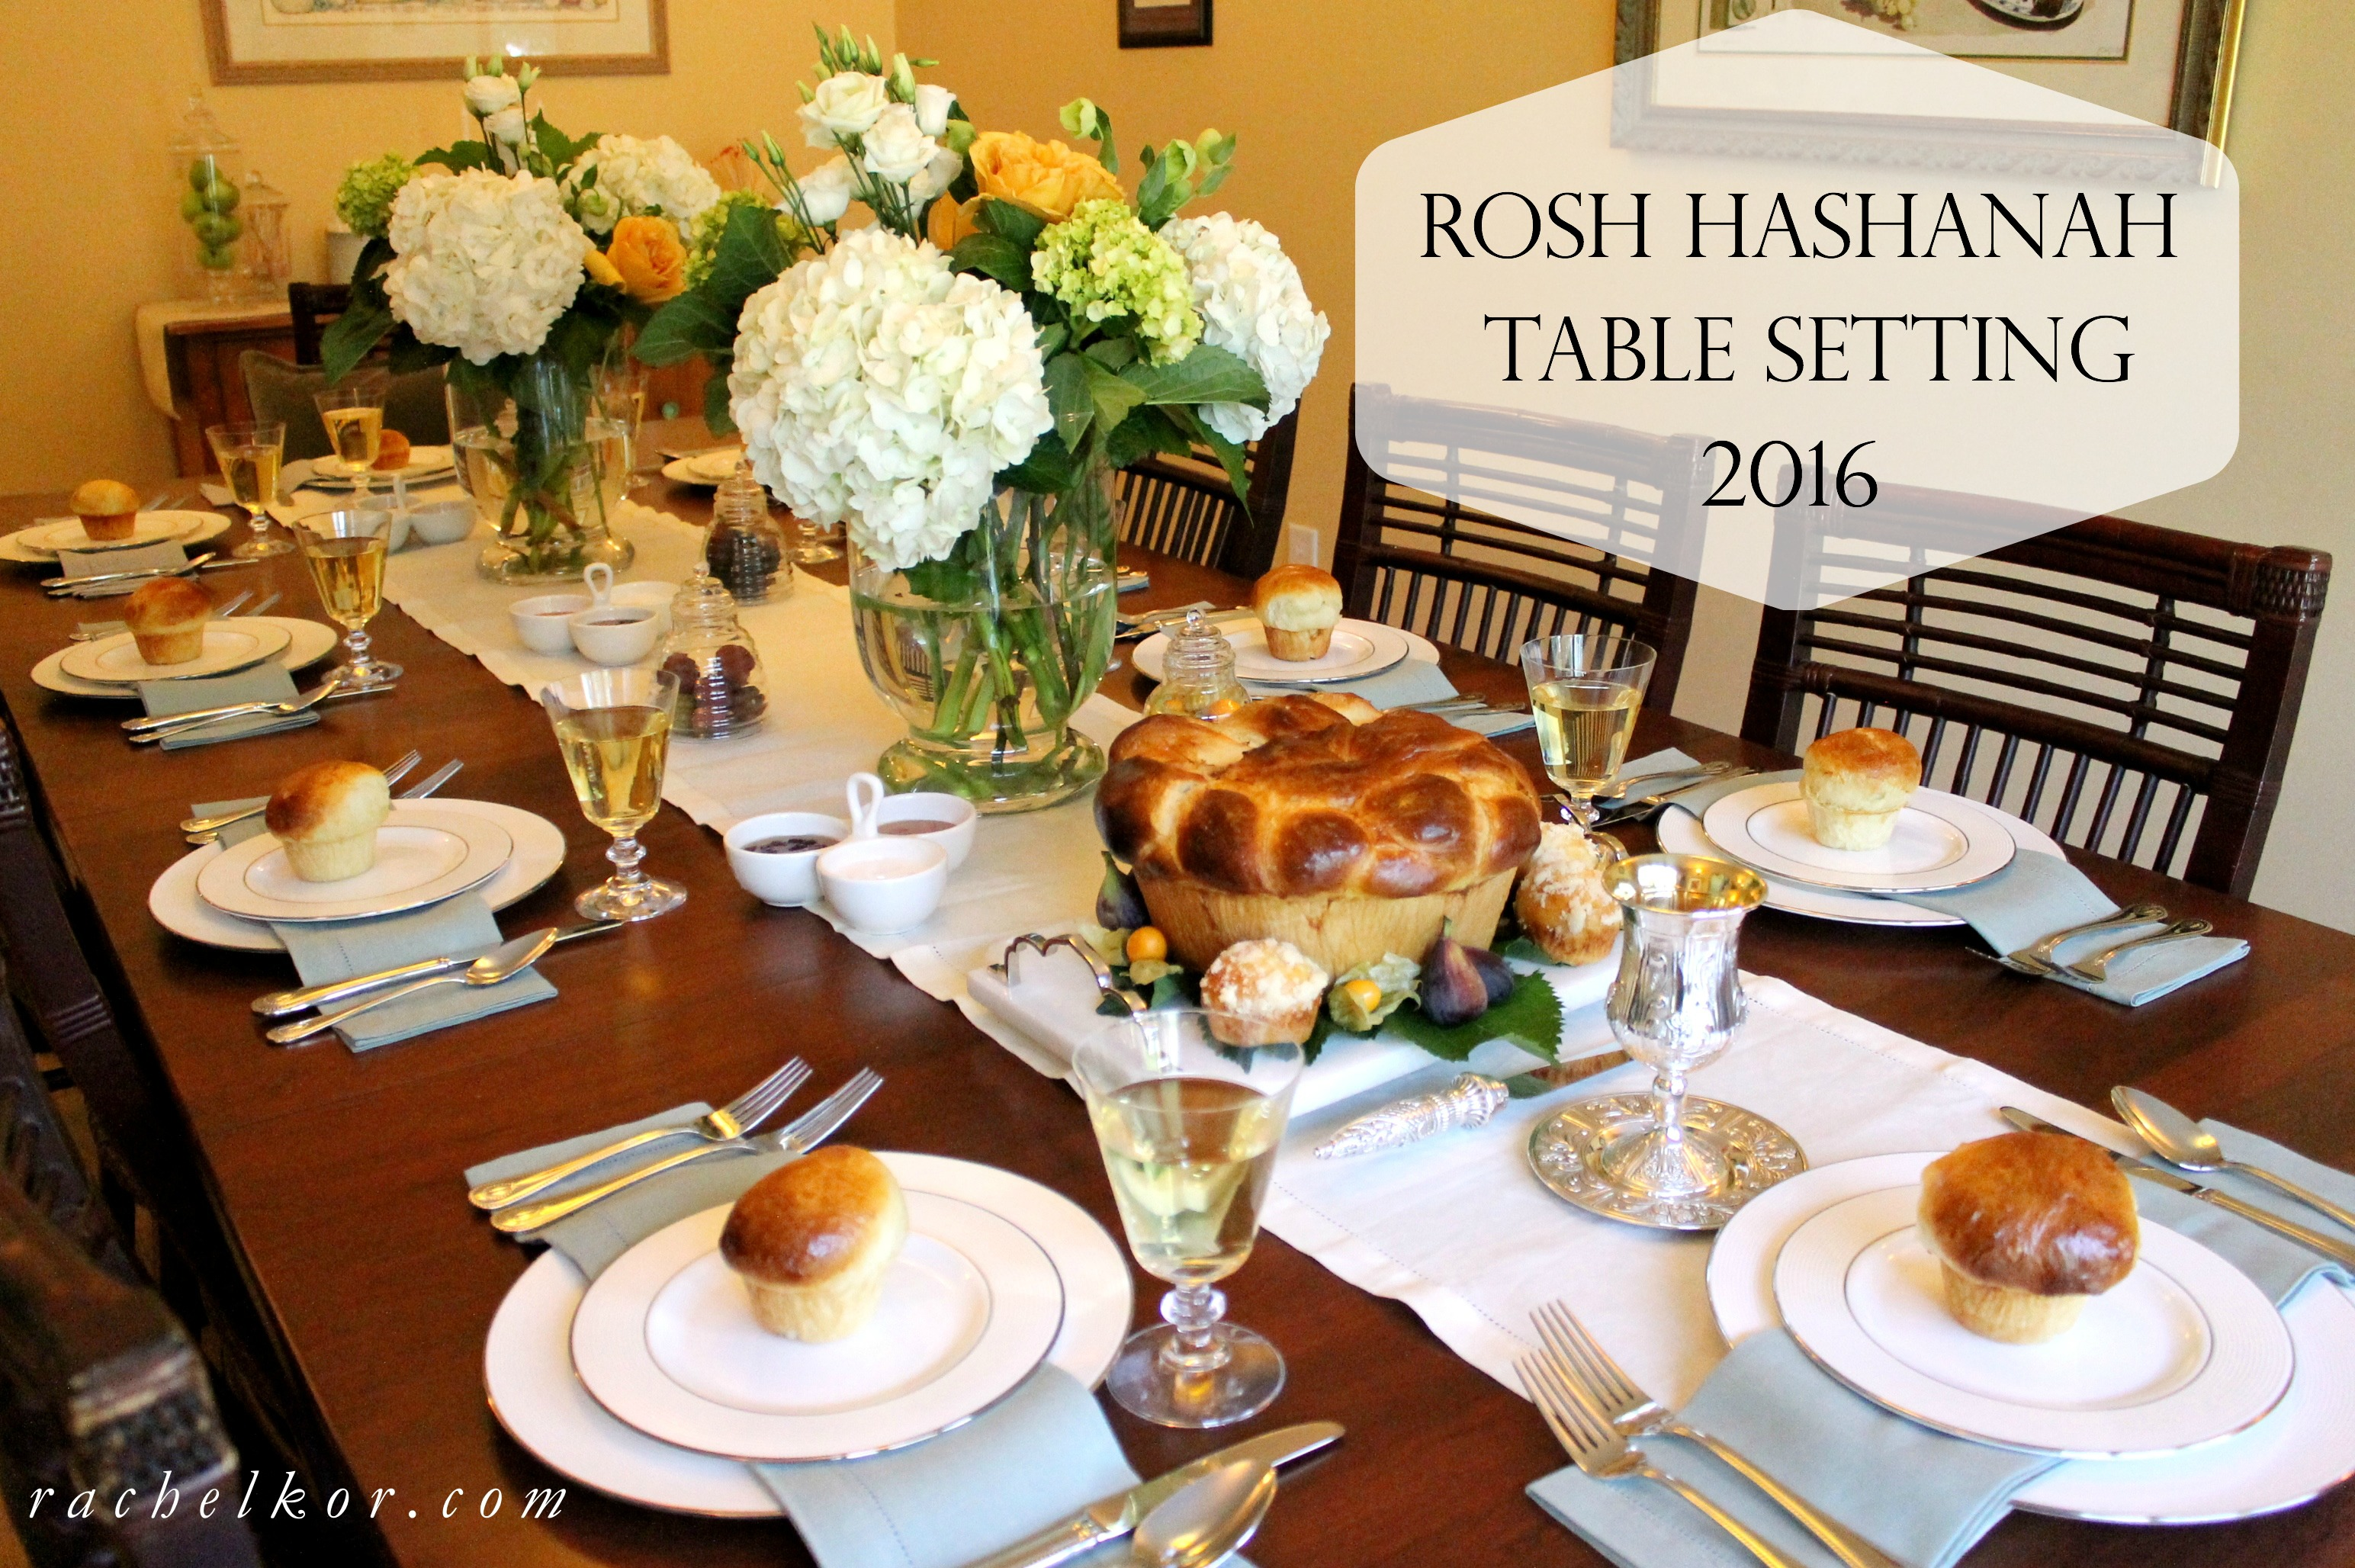 Vase for fruit is an important part of table setting